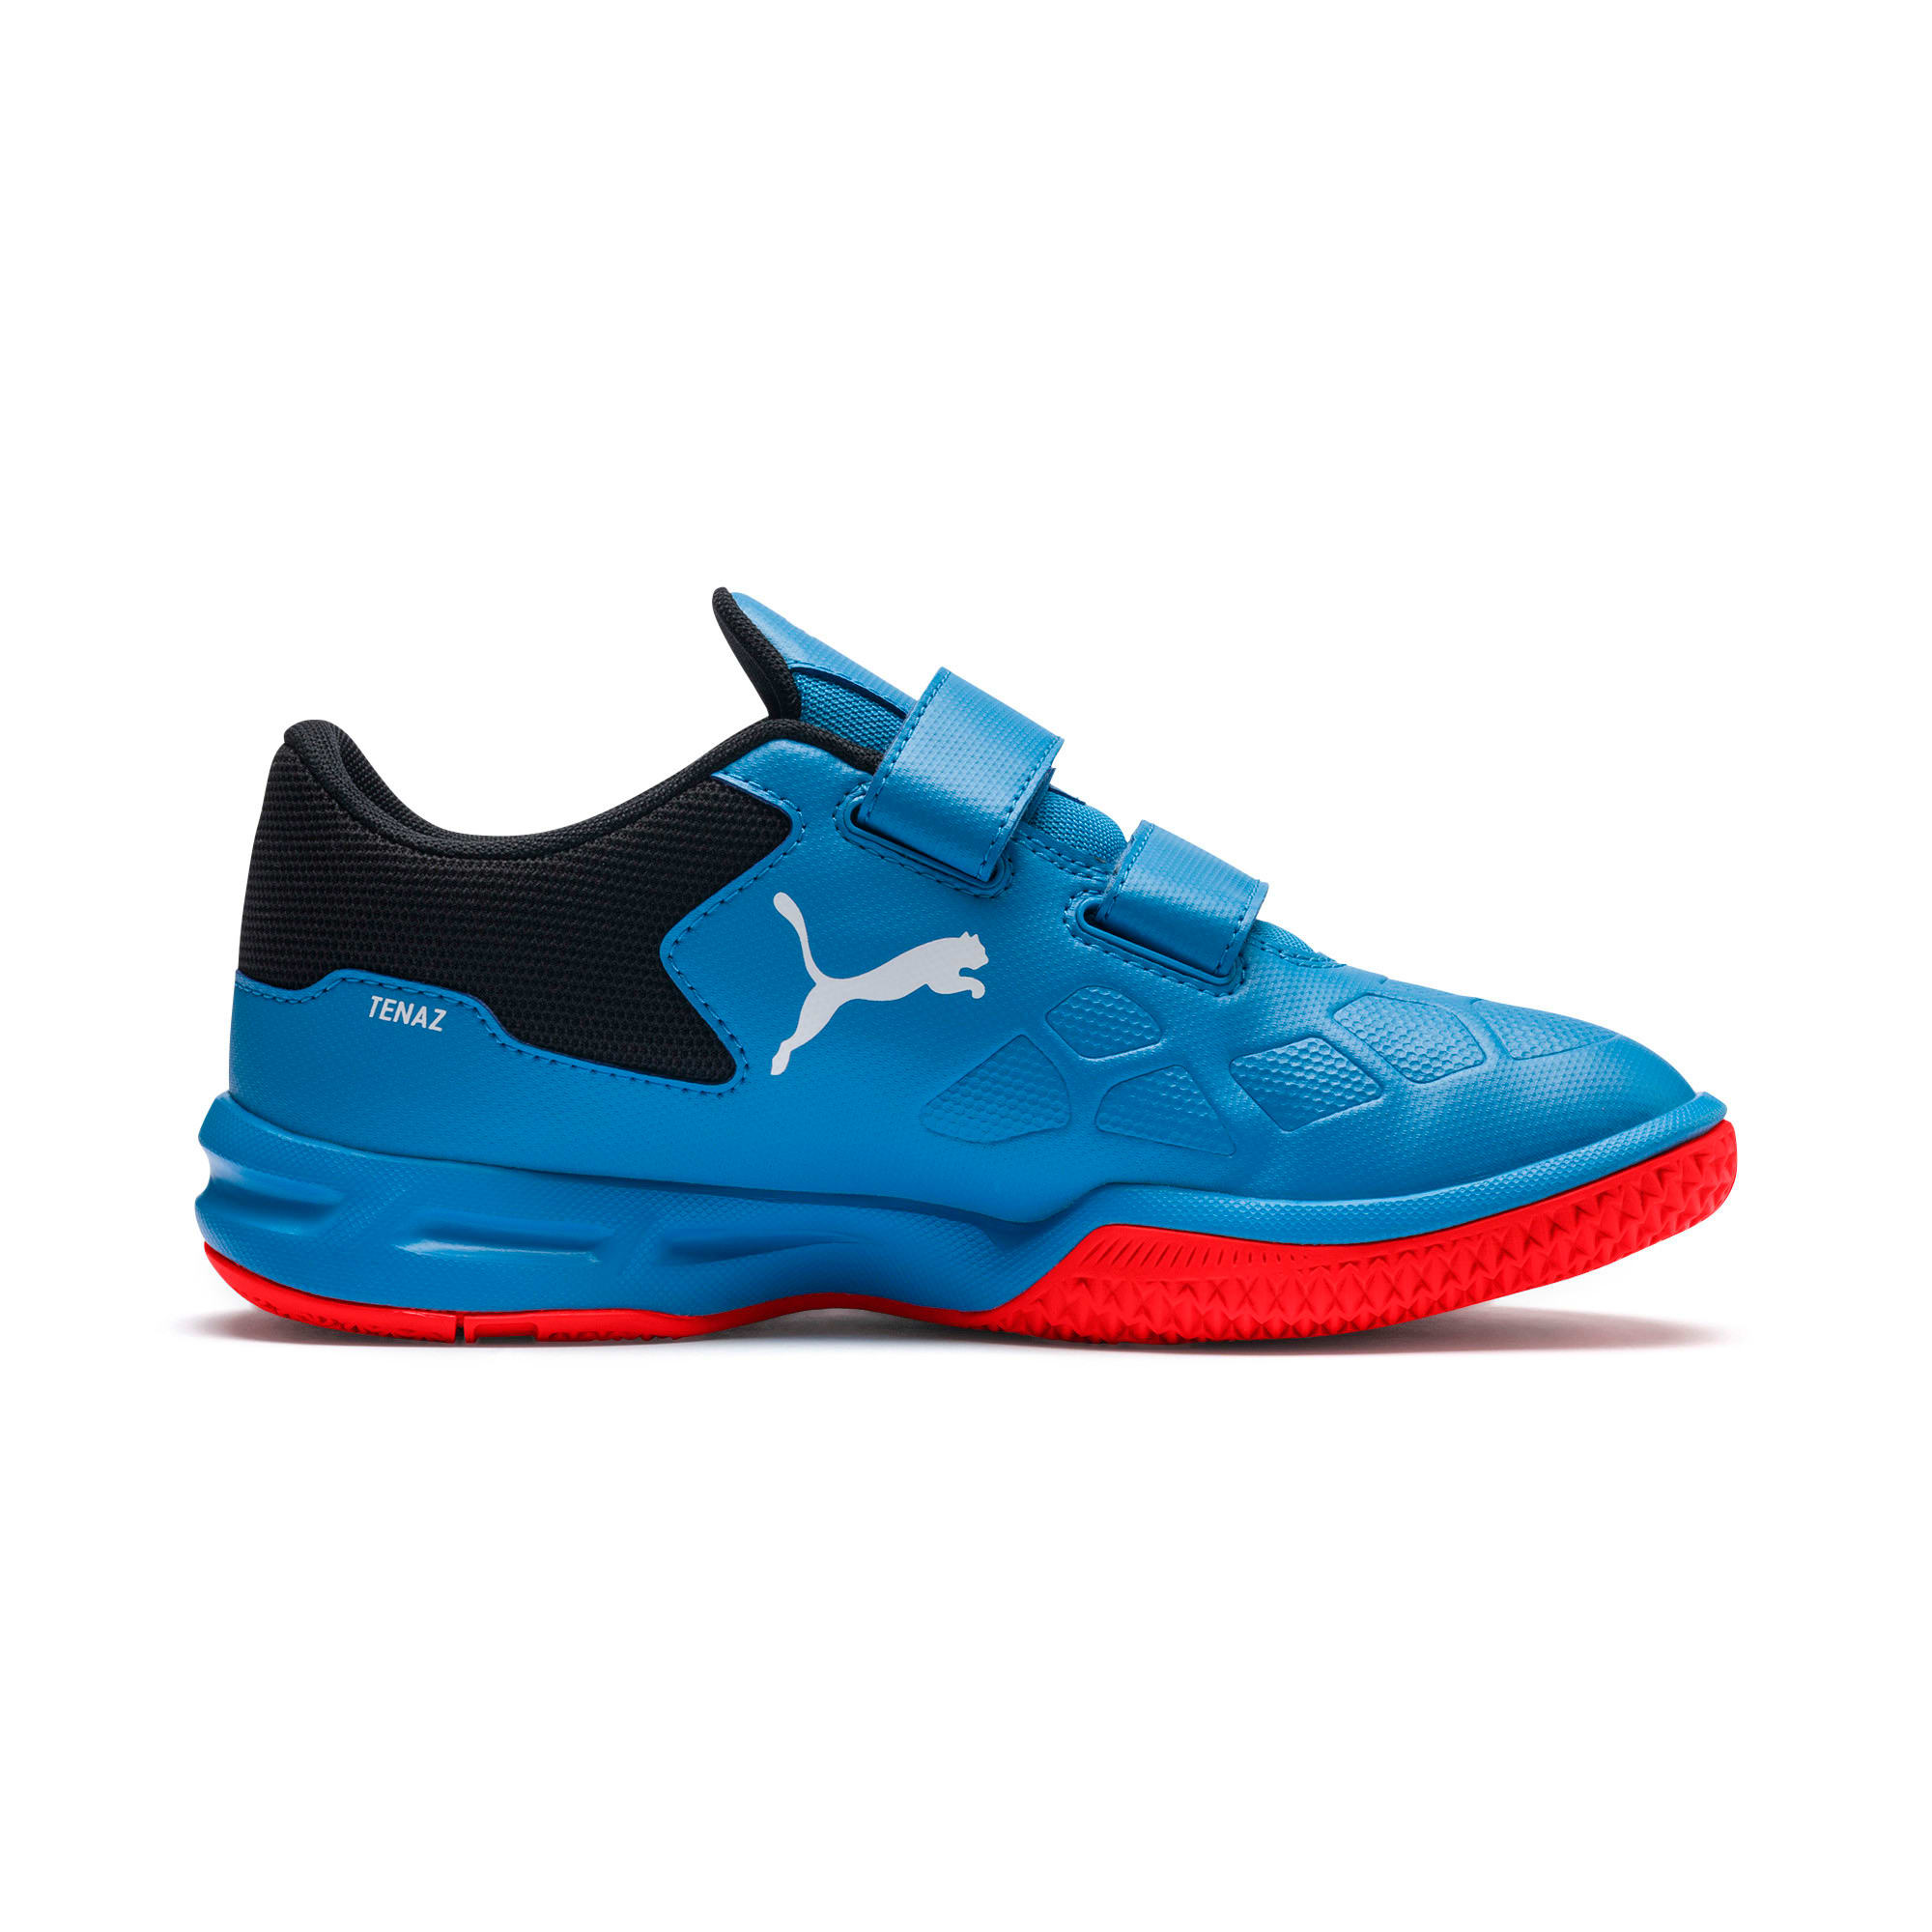 Thumbnail 5 of Tenaz V Youth Trainers, Bleu Azur-White-Black-Red, medium-IND